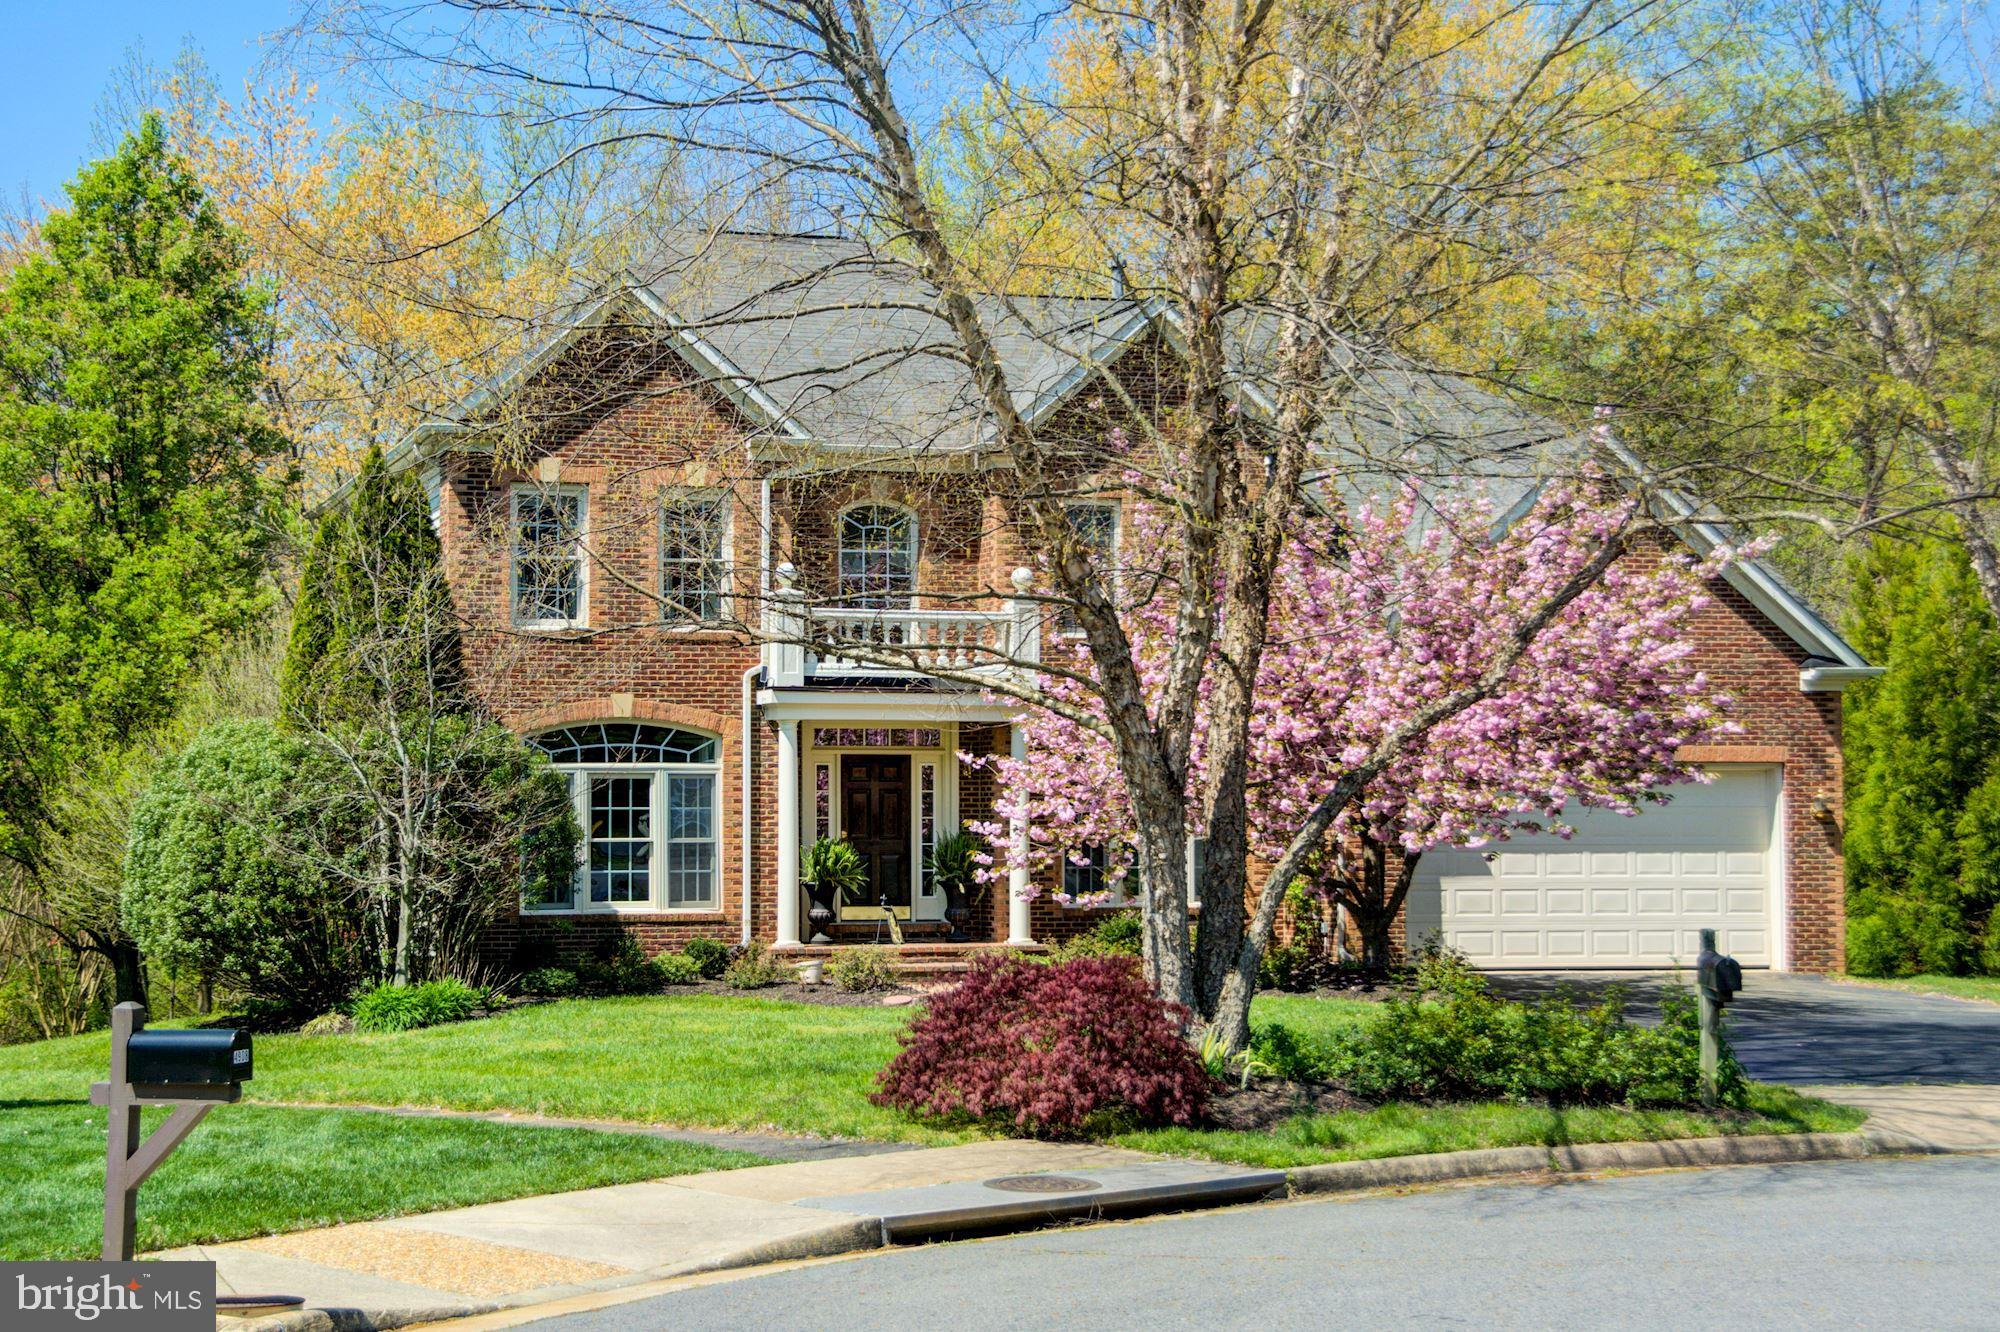 3D TOUR***   4906ElsaCt.com  Amazing home located at the end of a cul-de-sac and backing to woods offering complete privacy. Grand entrance with 2 story foyer and tons of natural light. Main level is loaded with hardwood floors and a much desired open floor plan. Two story family room off kitchen with gas fireplace and over sized windows. Private office just off family room with amazing views of your secluded lush green yard. Gourmet kitchen with counter top seating, kitchen island, tons of cabinet space and opens to sun room loaded with windows and natural light. Walk out to 2 tiered deck with absolute privacy and tons of room for entertaining. Upper level with 4 bedrooms and a master suite with walk-in closet and luxury bath. Luxury bath that offers stand up shower and separate soaking tub. Lower level with large rec room, huge bar area, full size windows and walkout to flat back yard. Lower level also has great storage 2 more bedrooms not to code and full bathroom. Two minute drive to I-66 HOV Eastbound lanes. Minutes to Fair Lakes shopping, elementary and Middle school, Route 29, and Fairfax County Parkway. This is truly a fantastic home that checks every box!